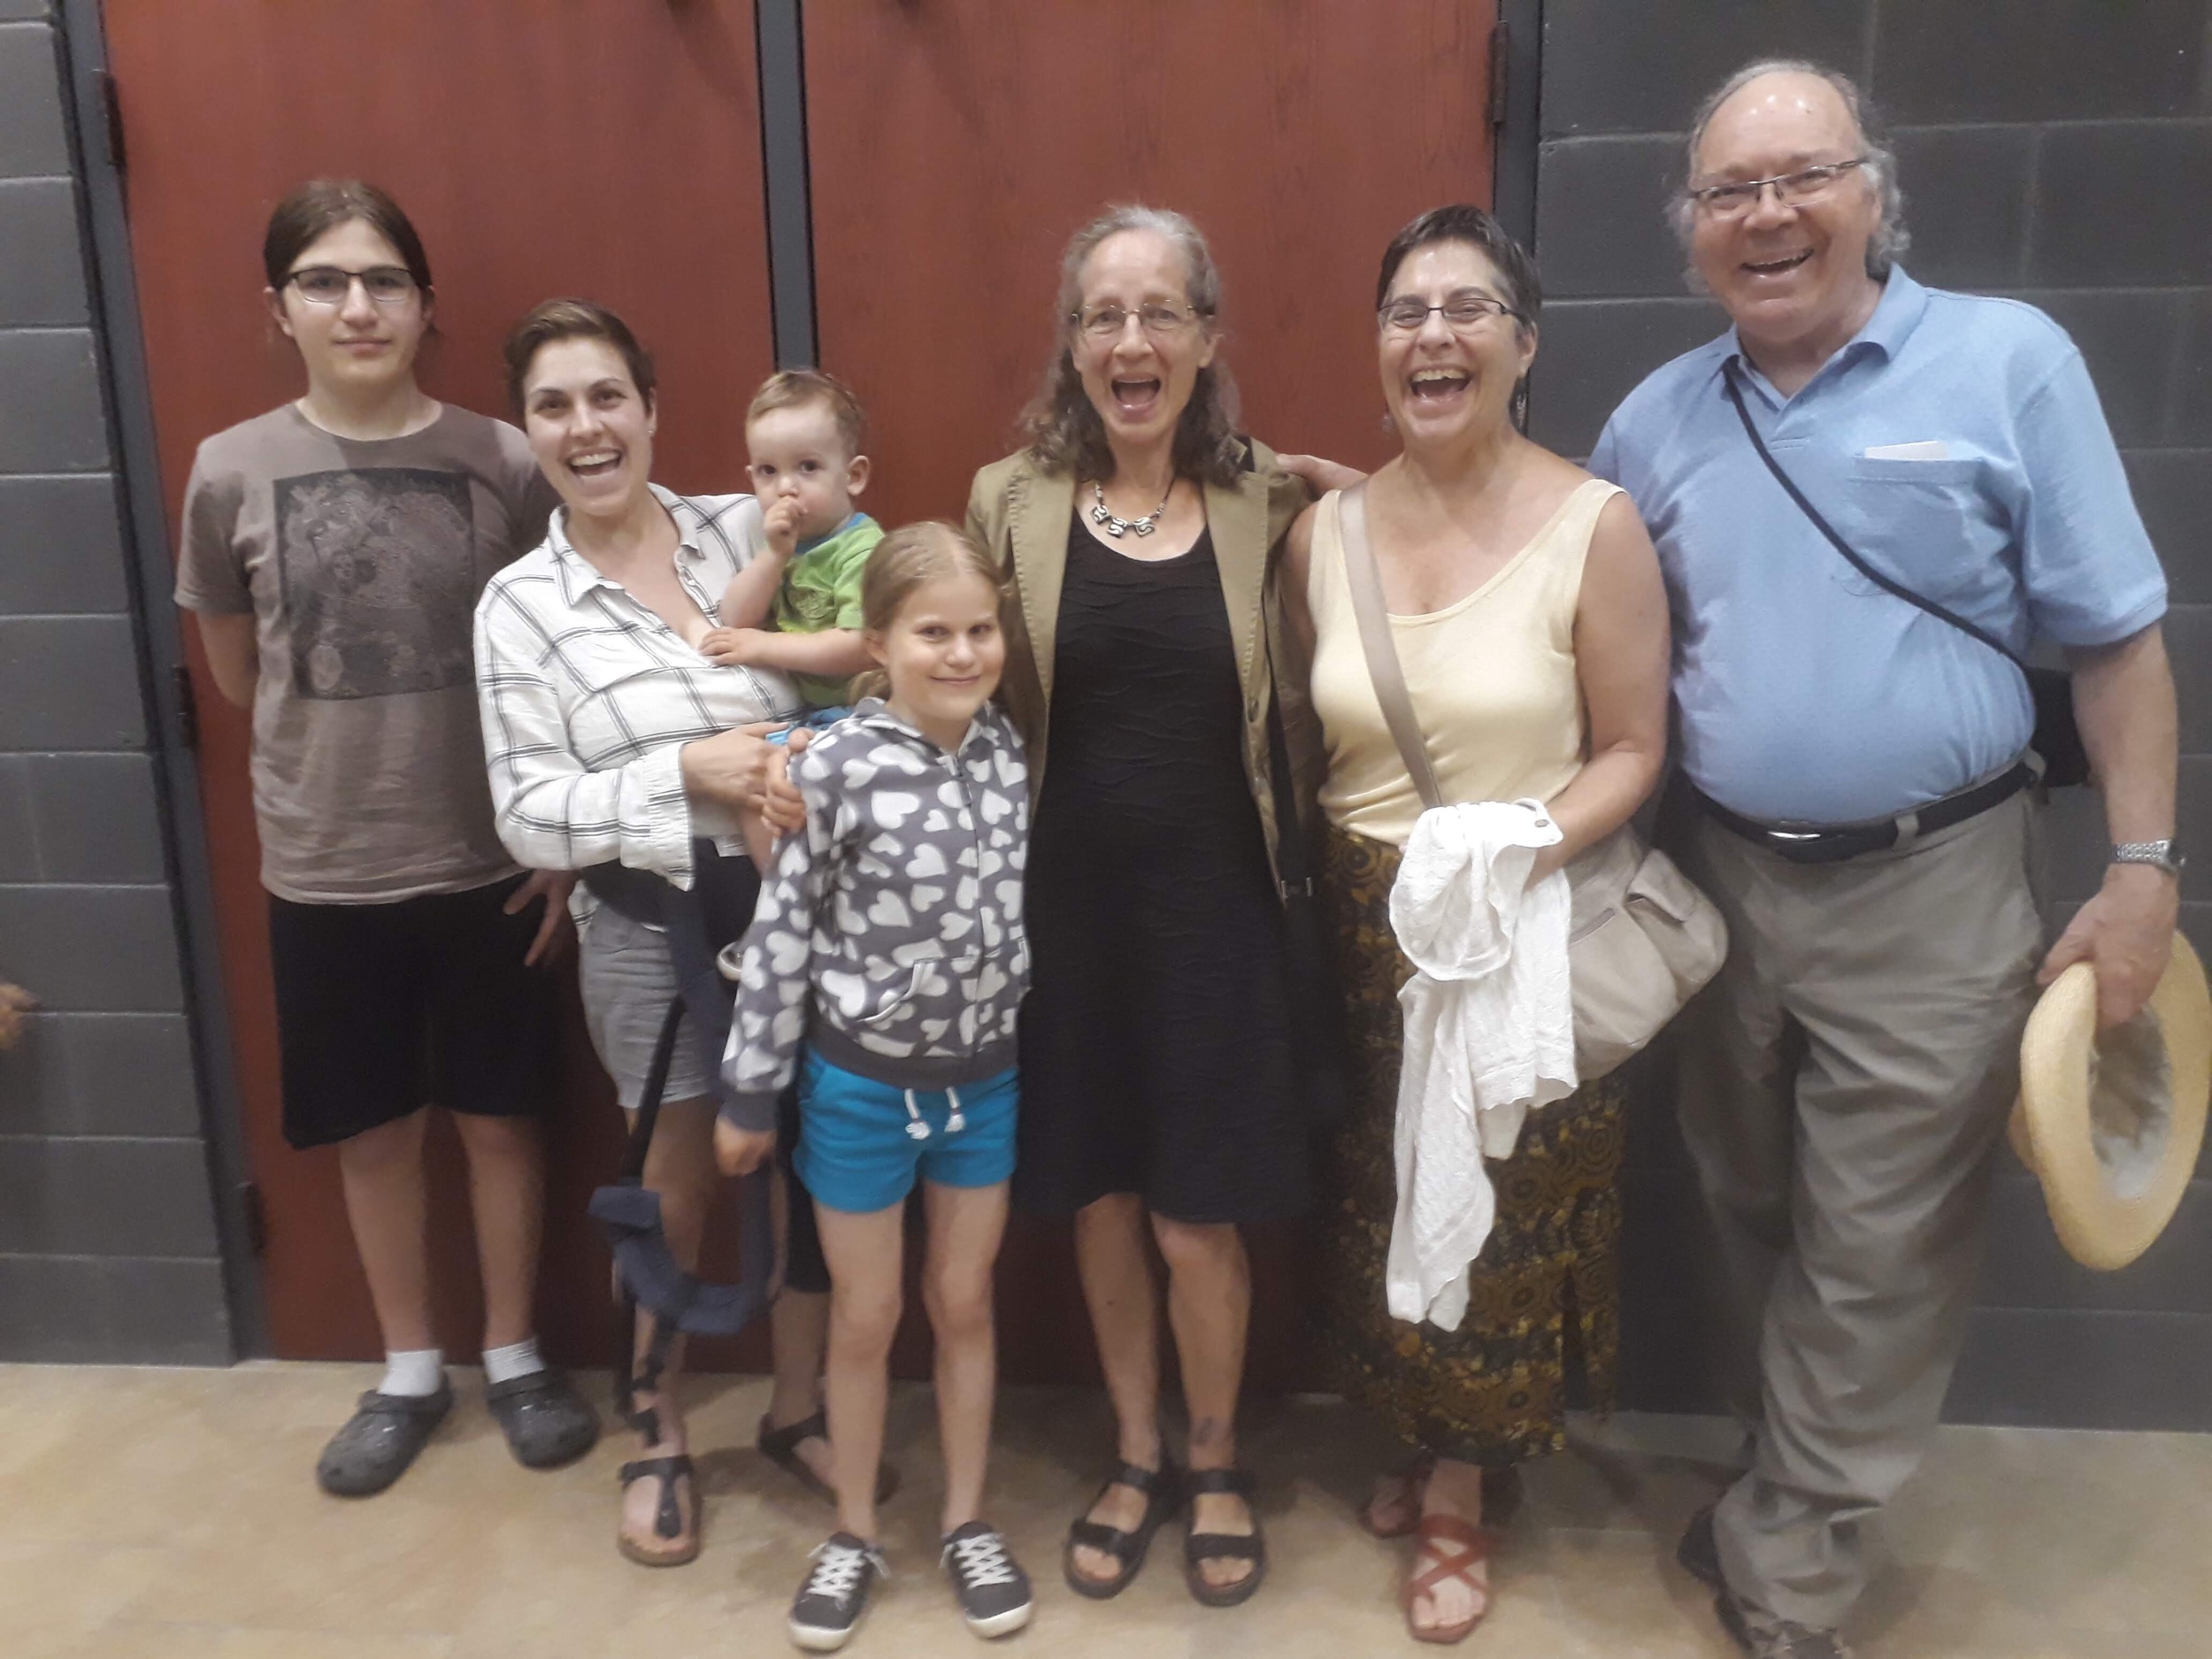 Post-music theatre camp show celebration with family and our awesome neighbor Barbara